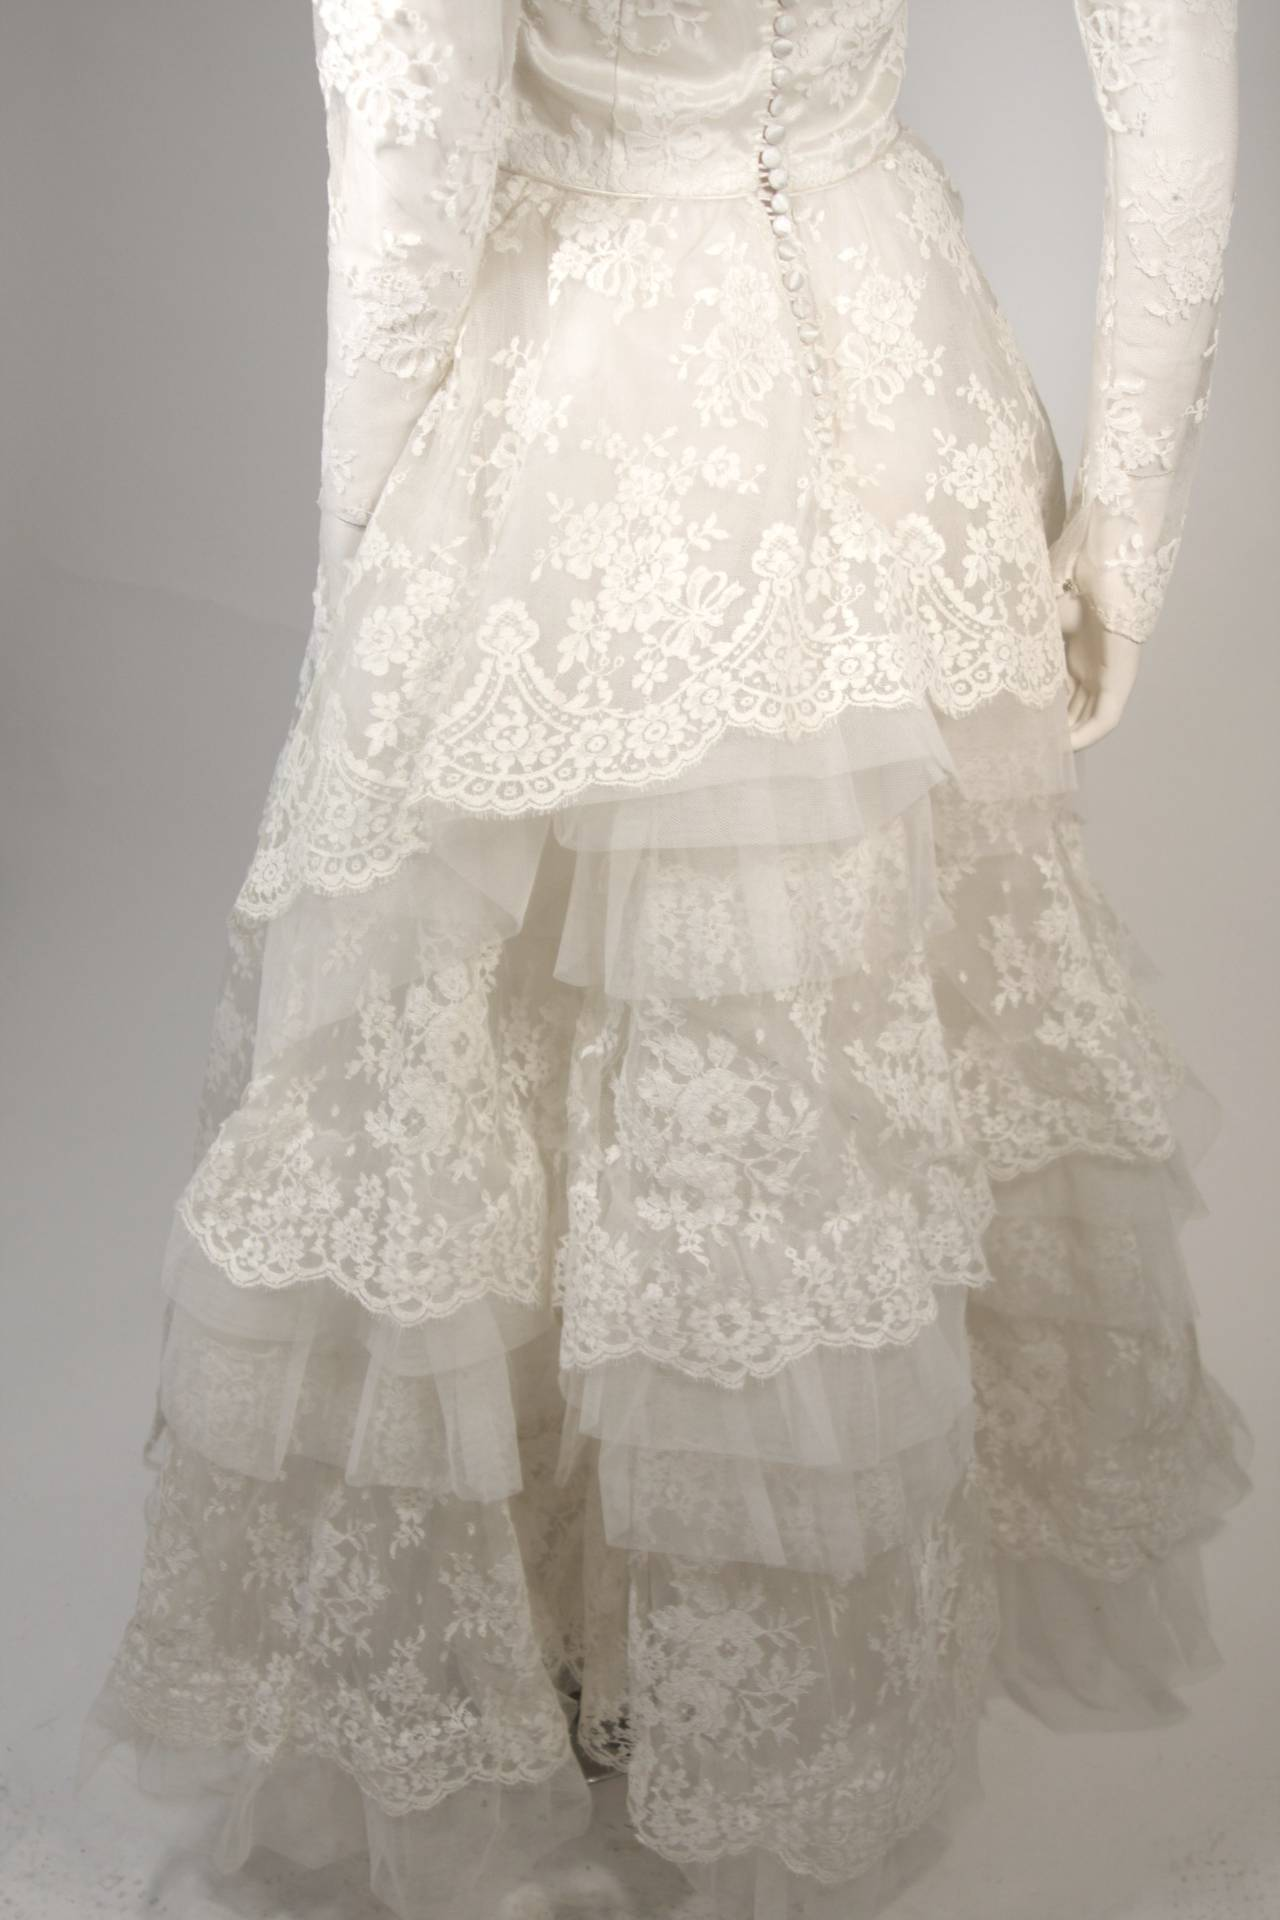 Vintage Lace Wedding Gown with Scalloped Edges and Long Sleeves Size Small For Sale 3